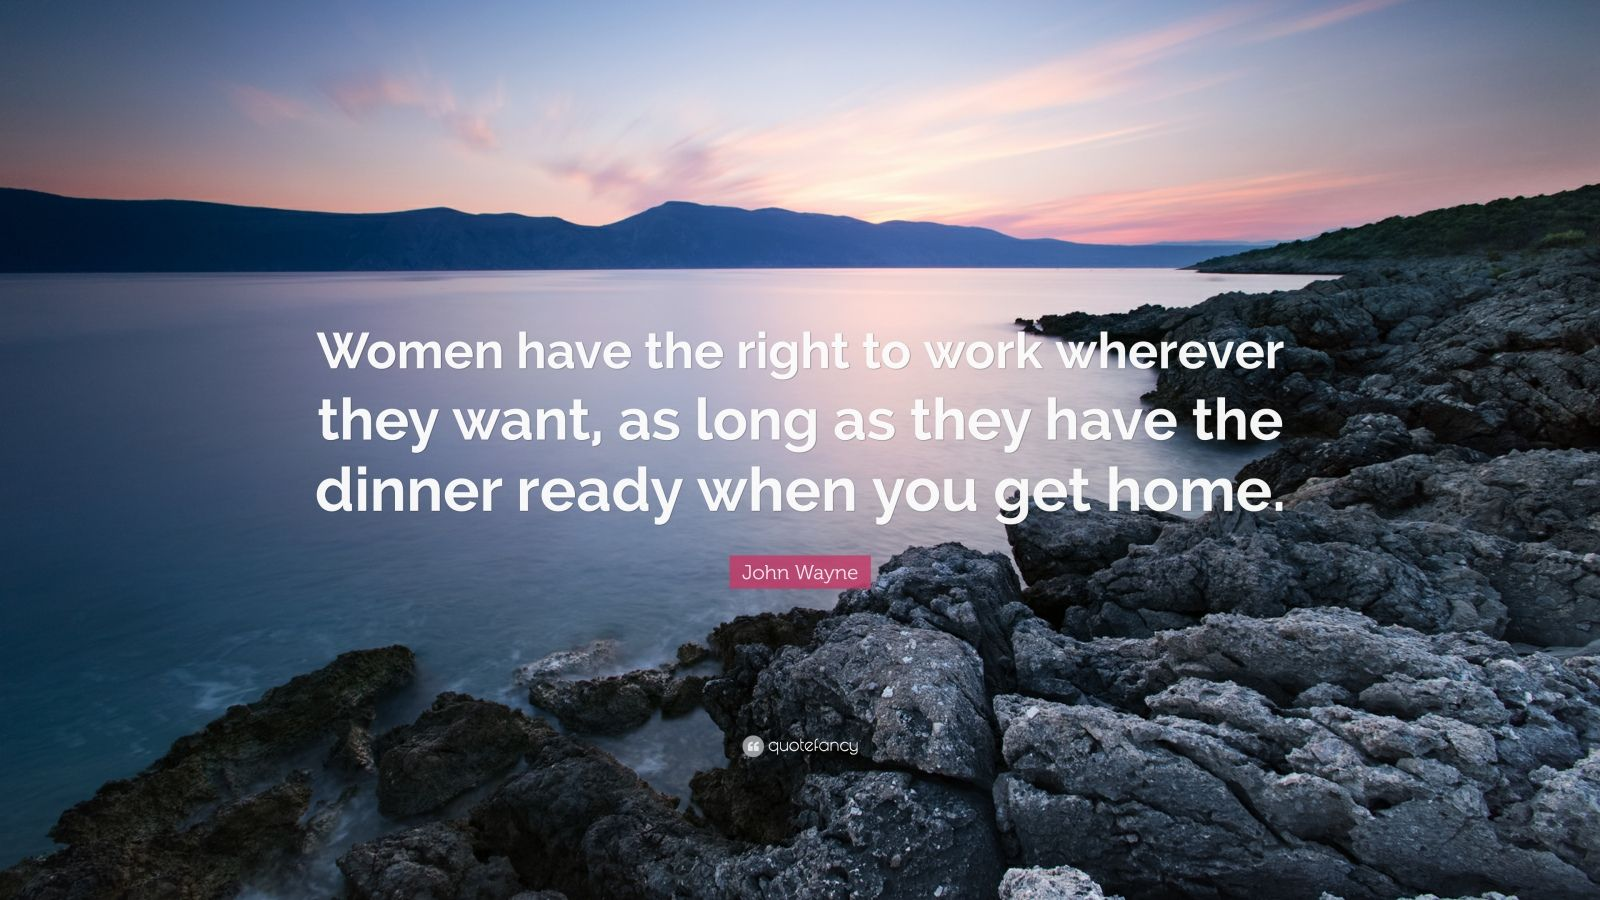 """John Wayne Quote: """"Women have the right to work wherever they want, as long as they have the dinner ready when you get home."""""""